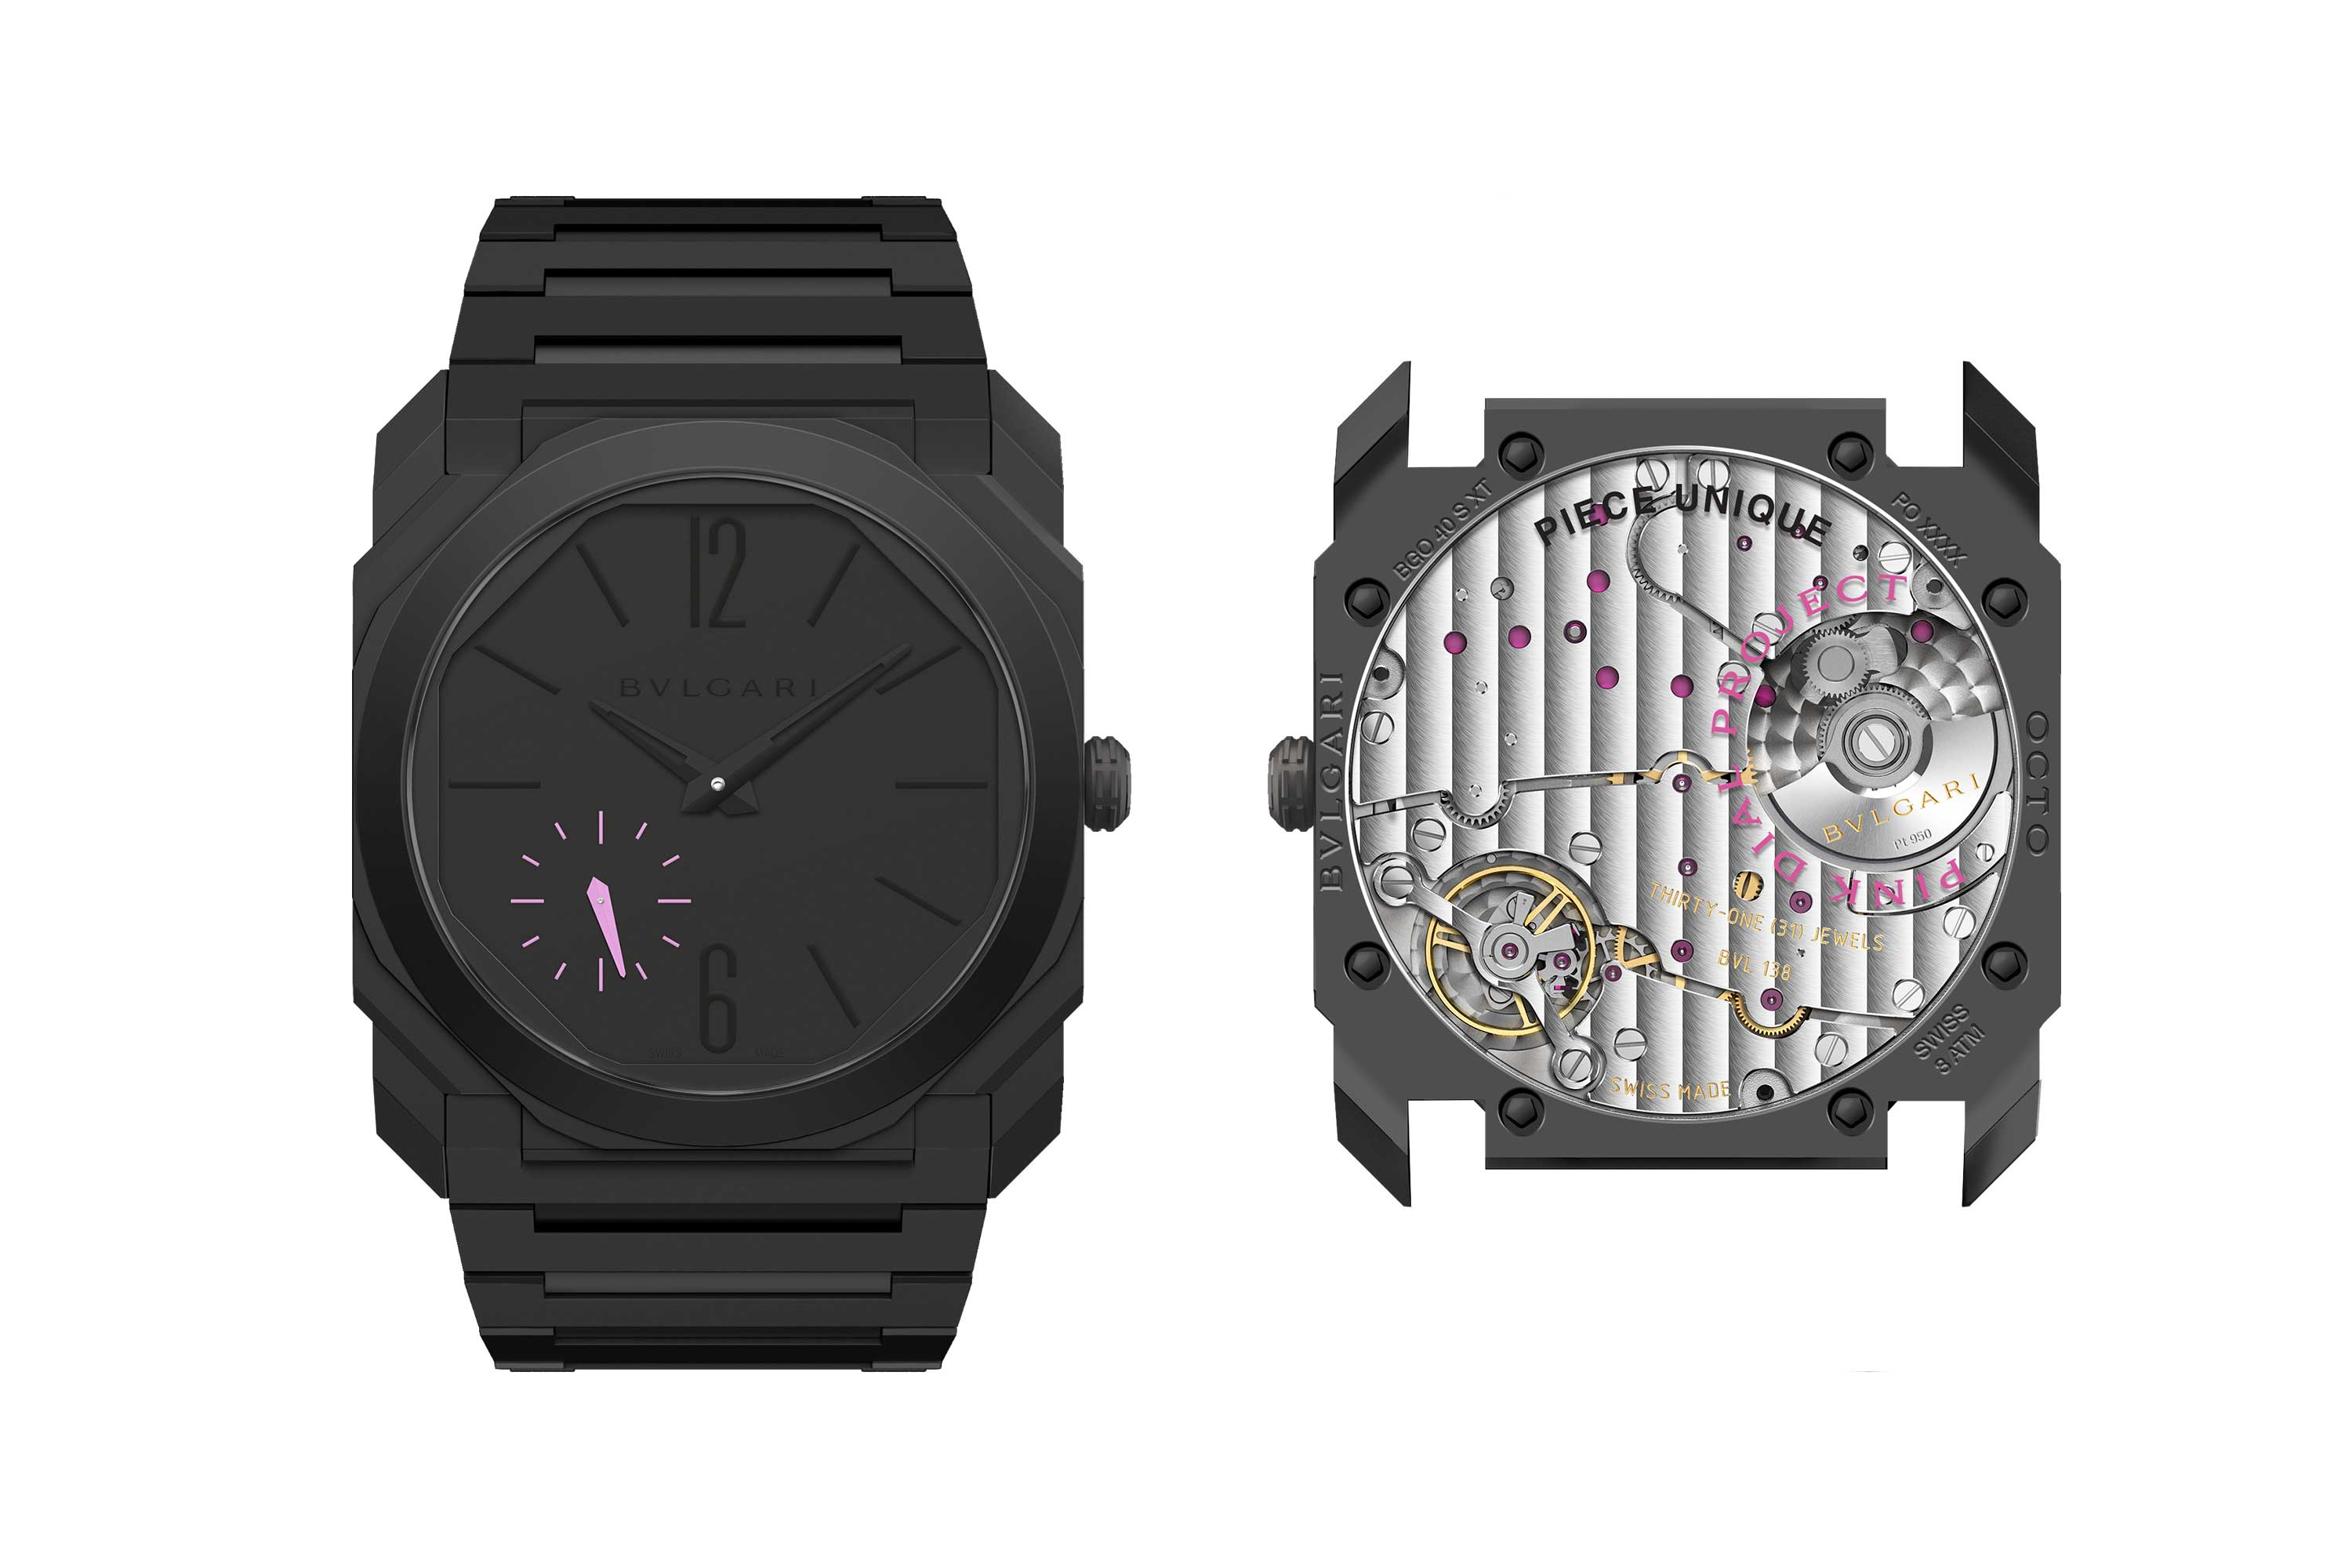 Bvlgari Octo Finissimo Automatic pièce unique in black ceramic with pink small seconds track and hand